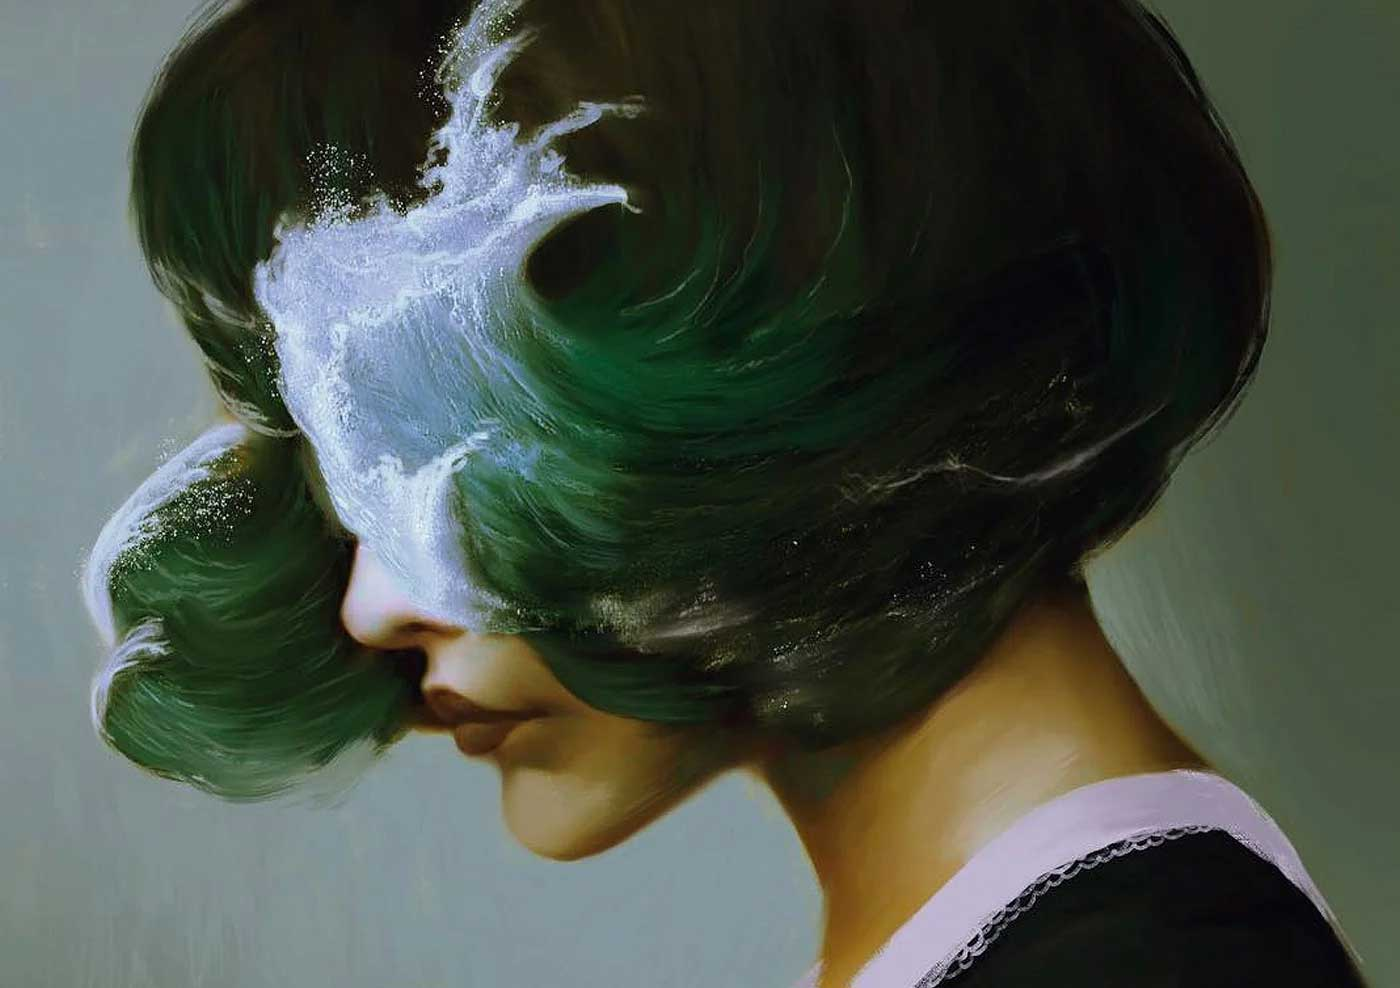 Neue surreale Digital Paintings von Aykut Aydogdu